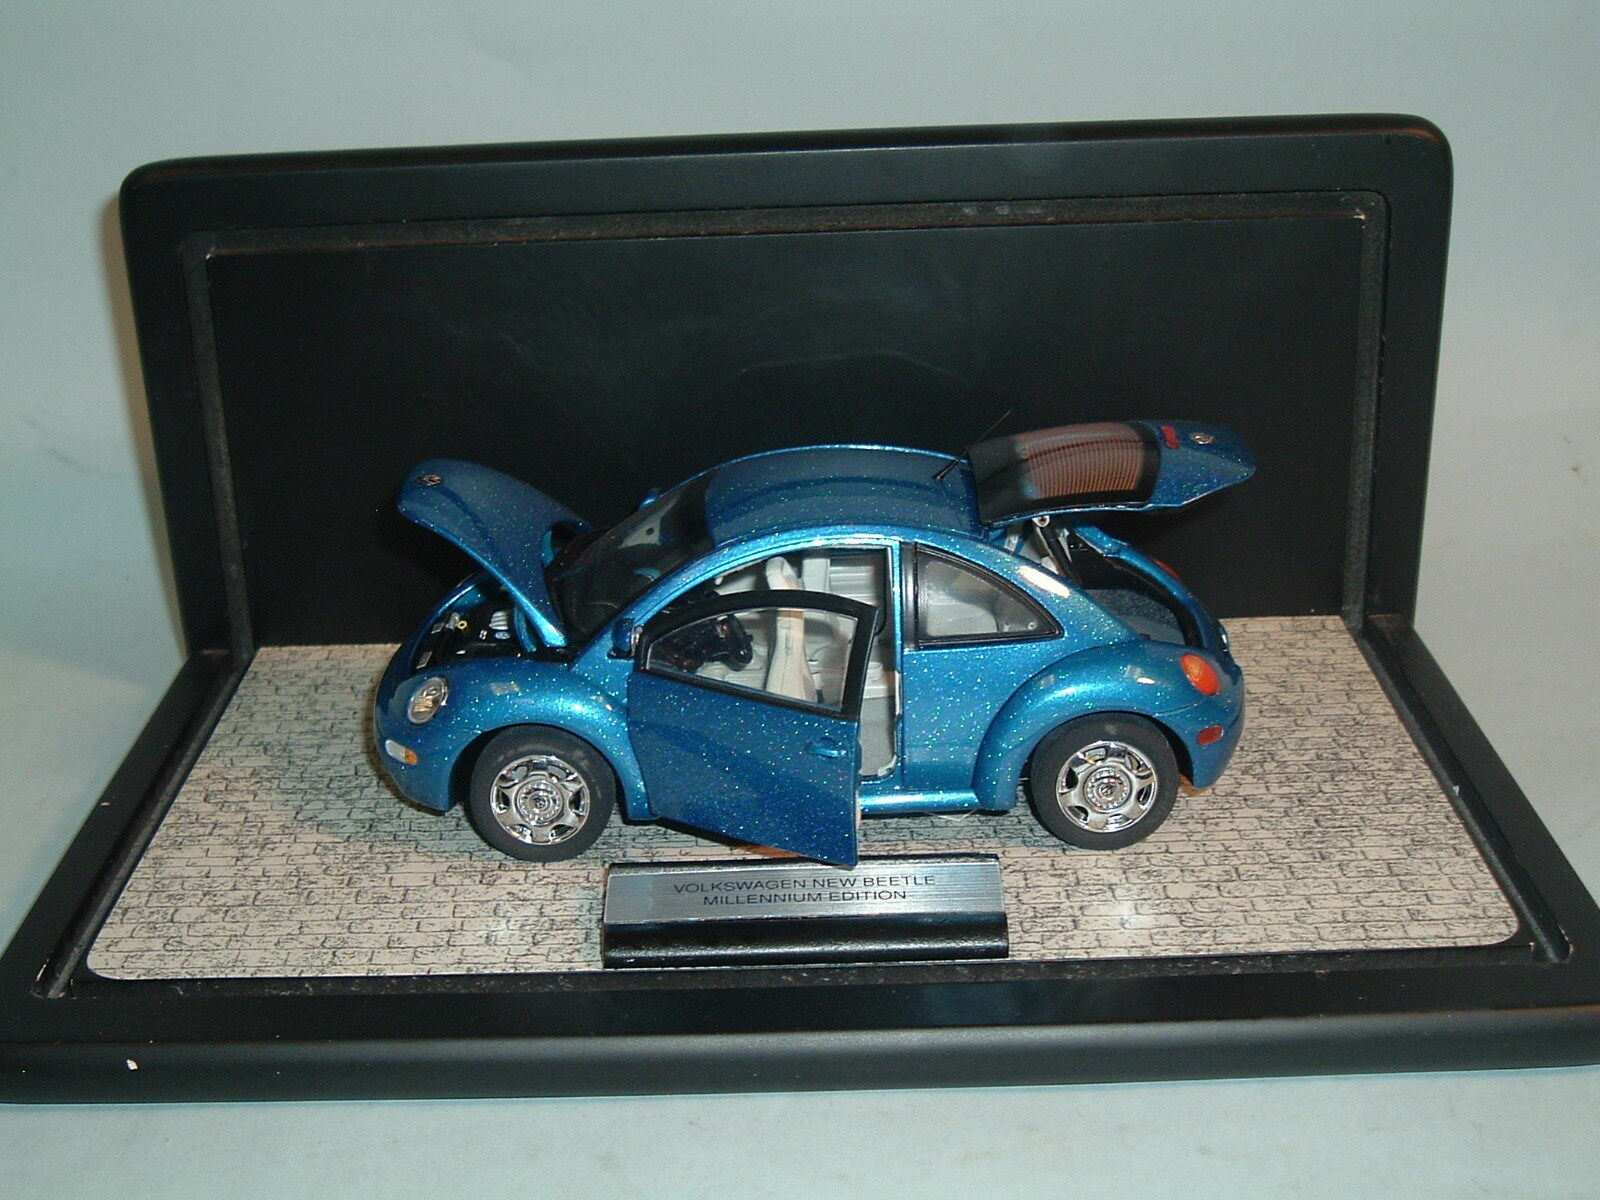 2000 vw käfer blaue le 1046   7500 franklin - mint - dienste druckguss & display